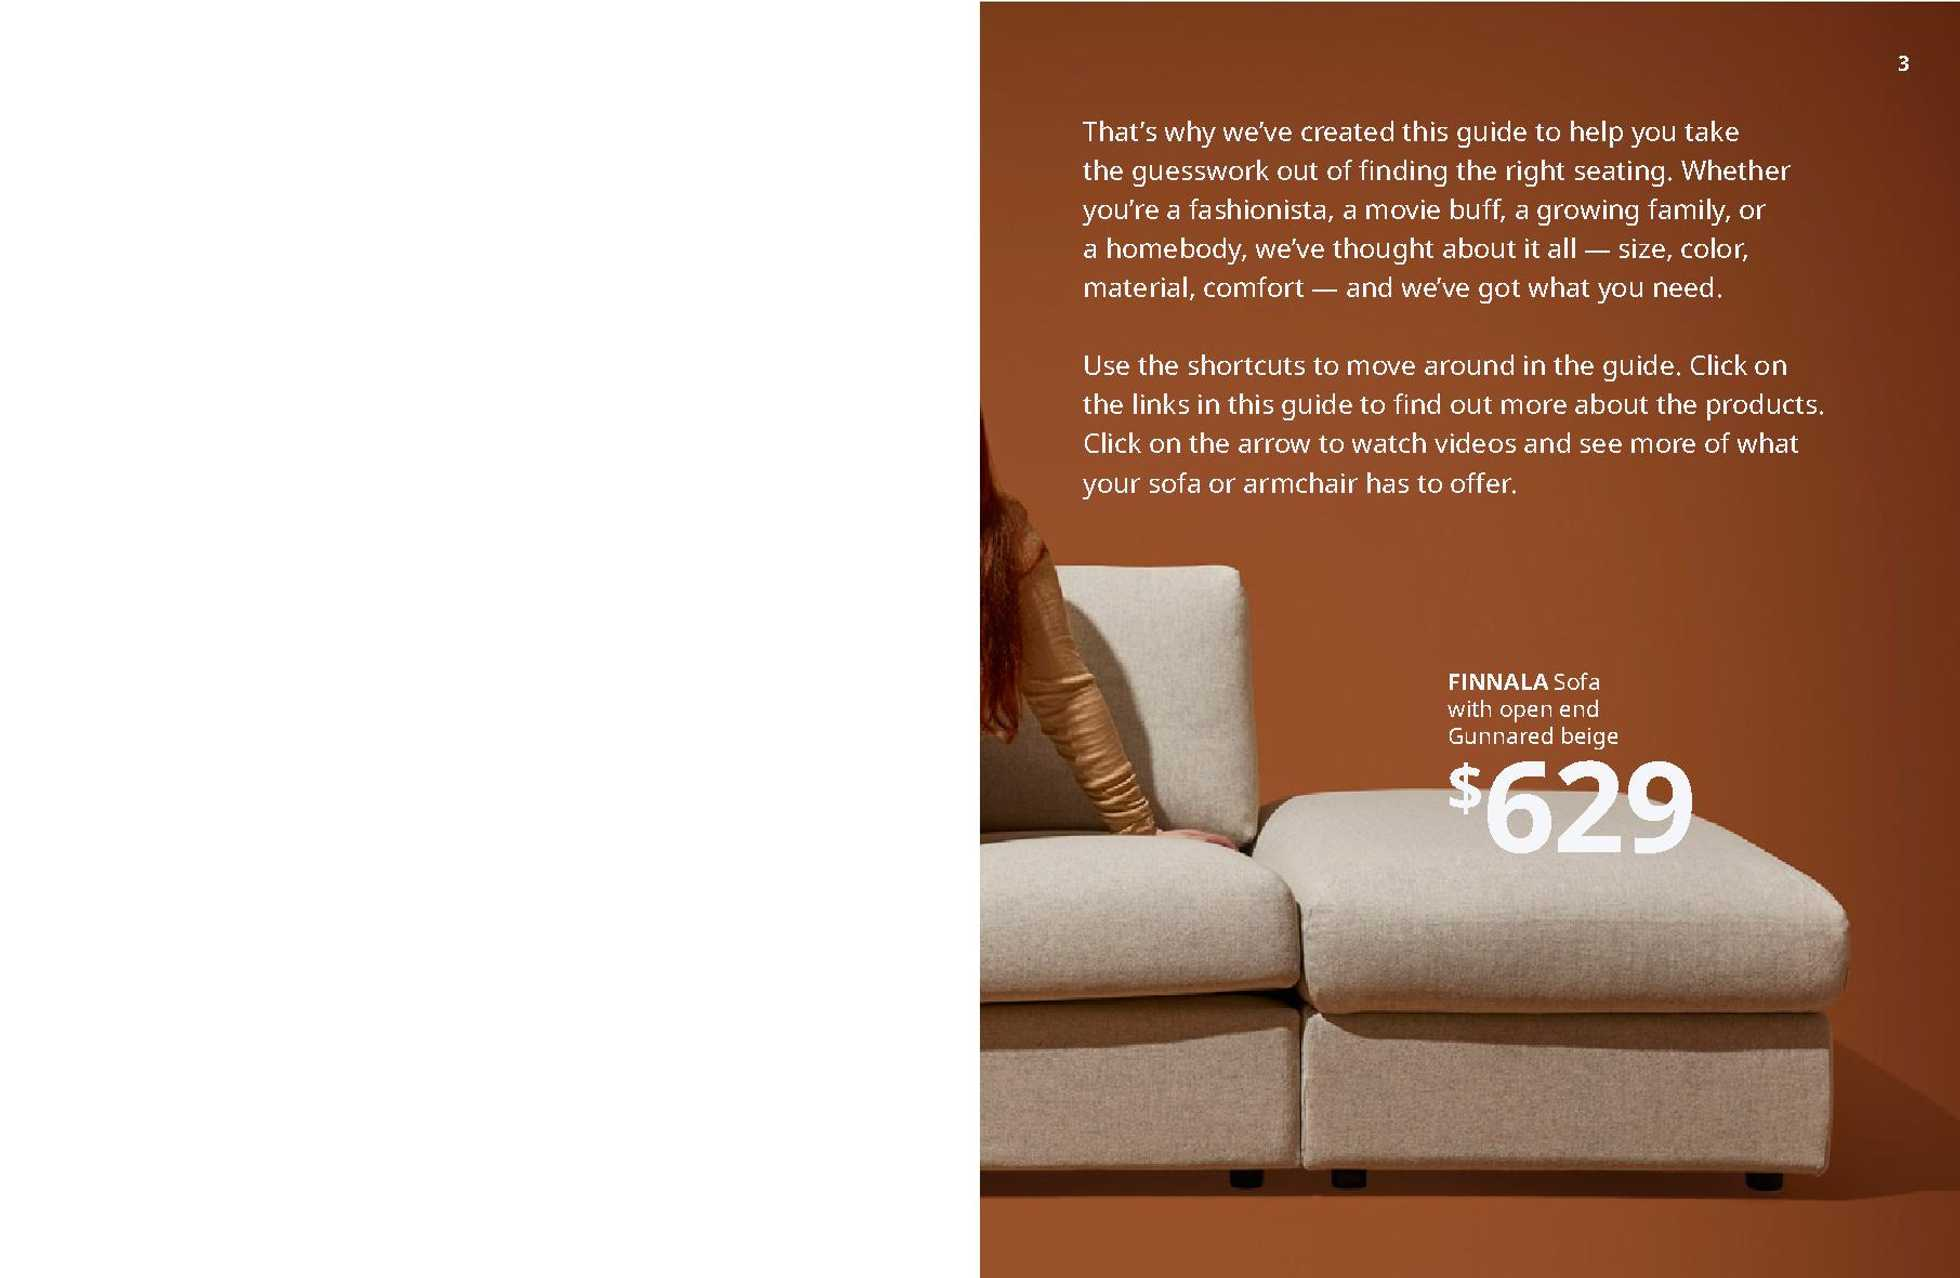 Ikea - deals are valid from 12/01/20 to 09/30/21 - page 3.